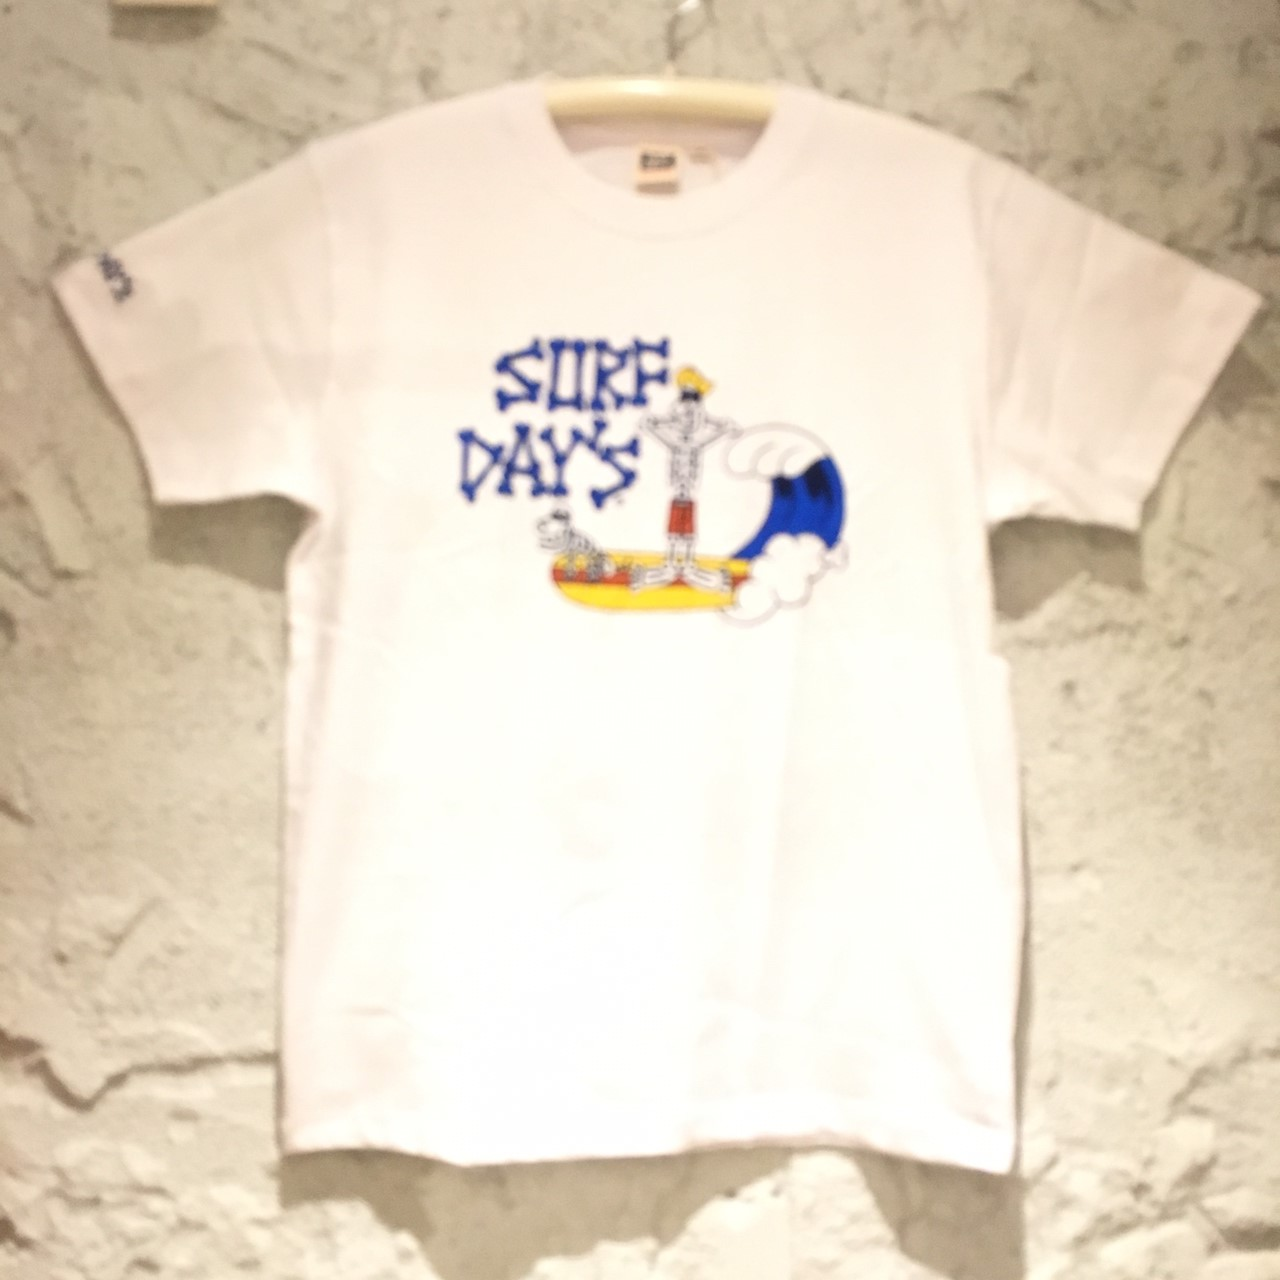 【SURF DAY'S】メンズ半袖Tee スカルsurfer WH/M/L/